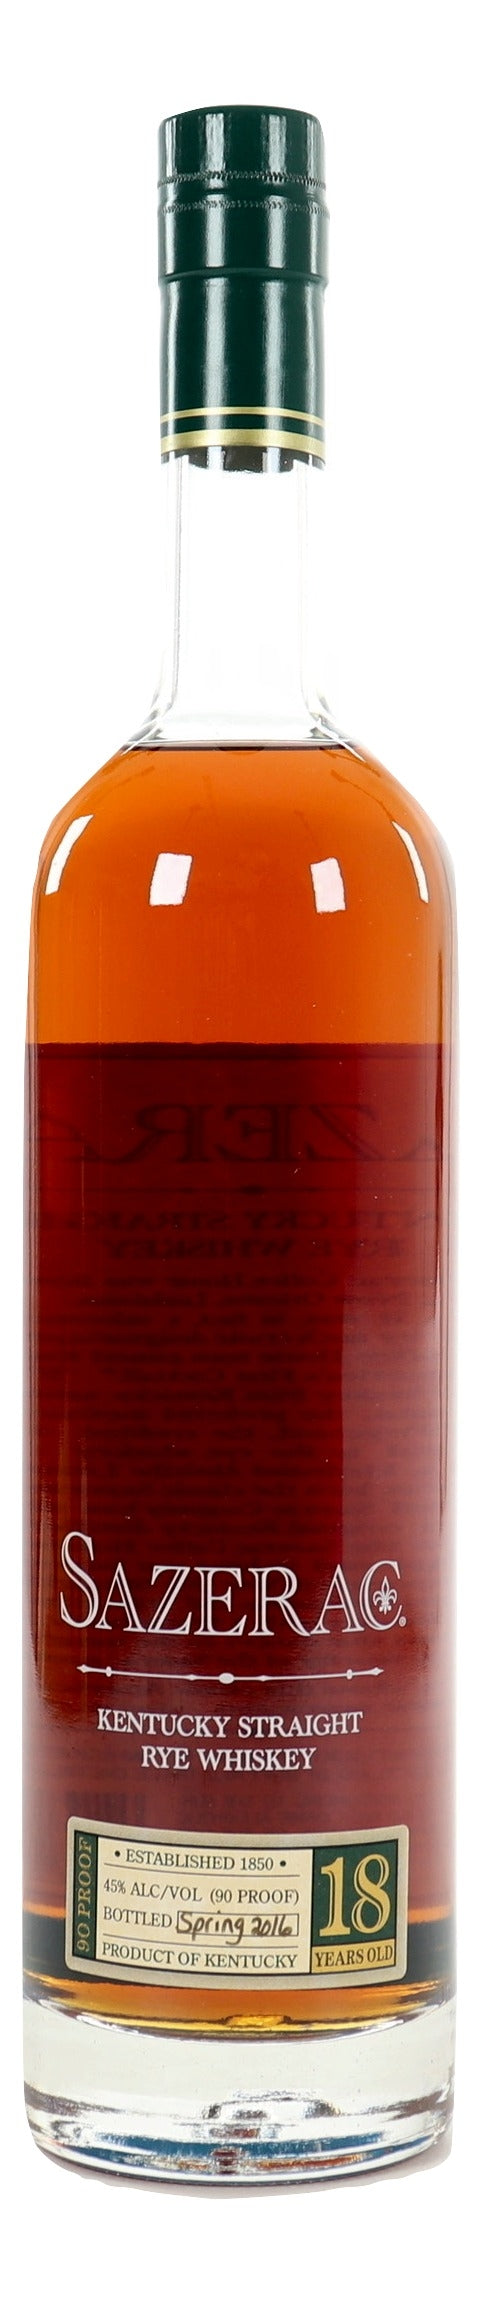 Sazerac 18 Year Old Rye 2016 For Sale - NativeSpiritsOnline